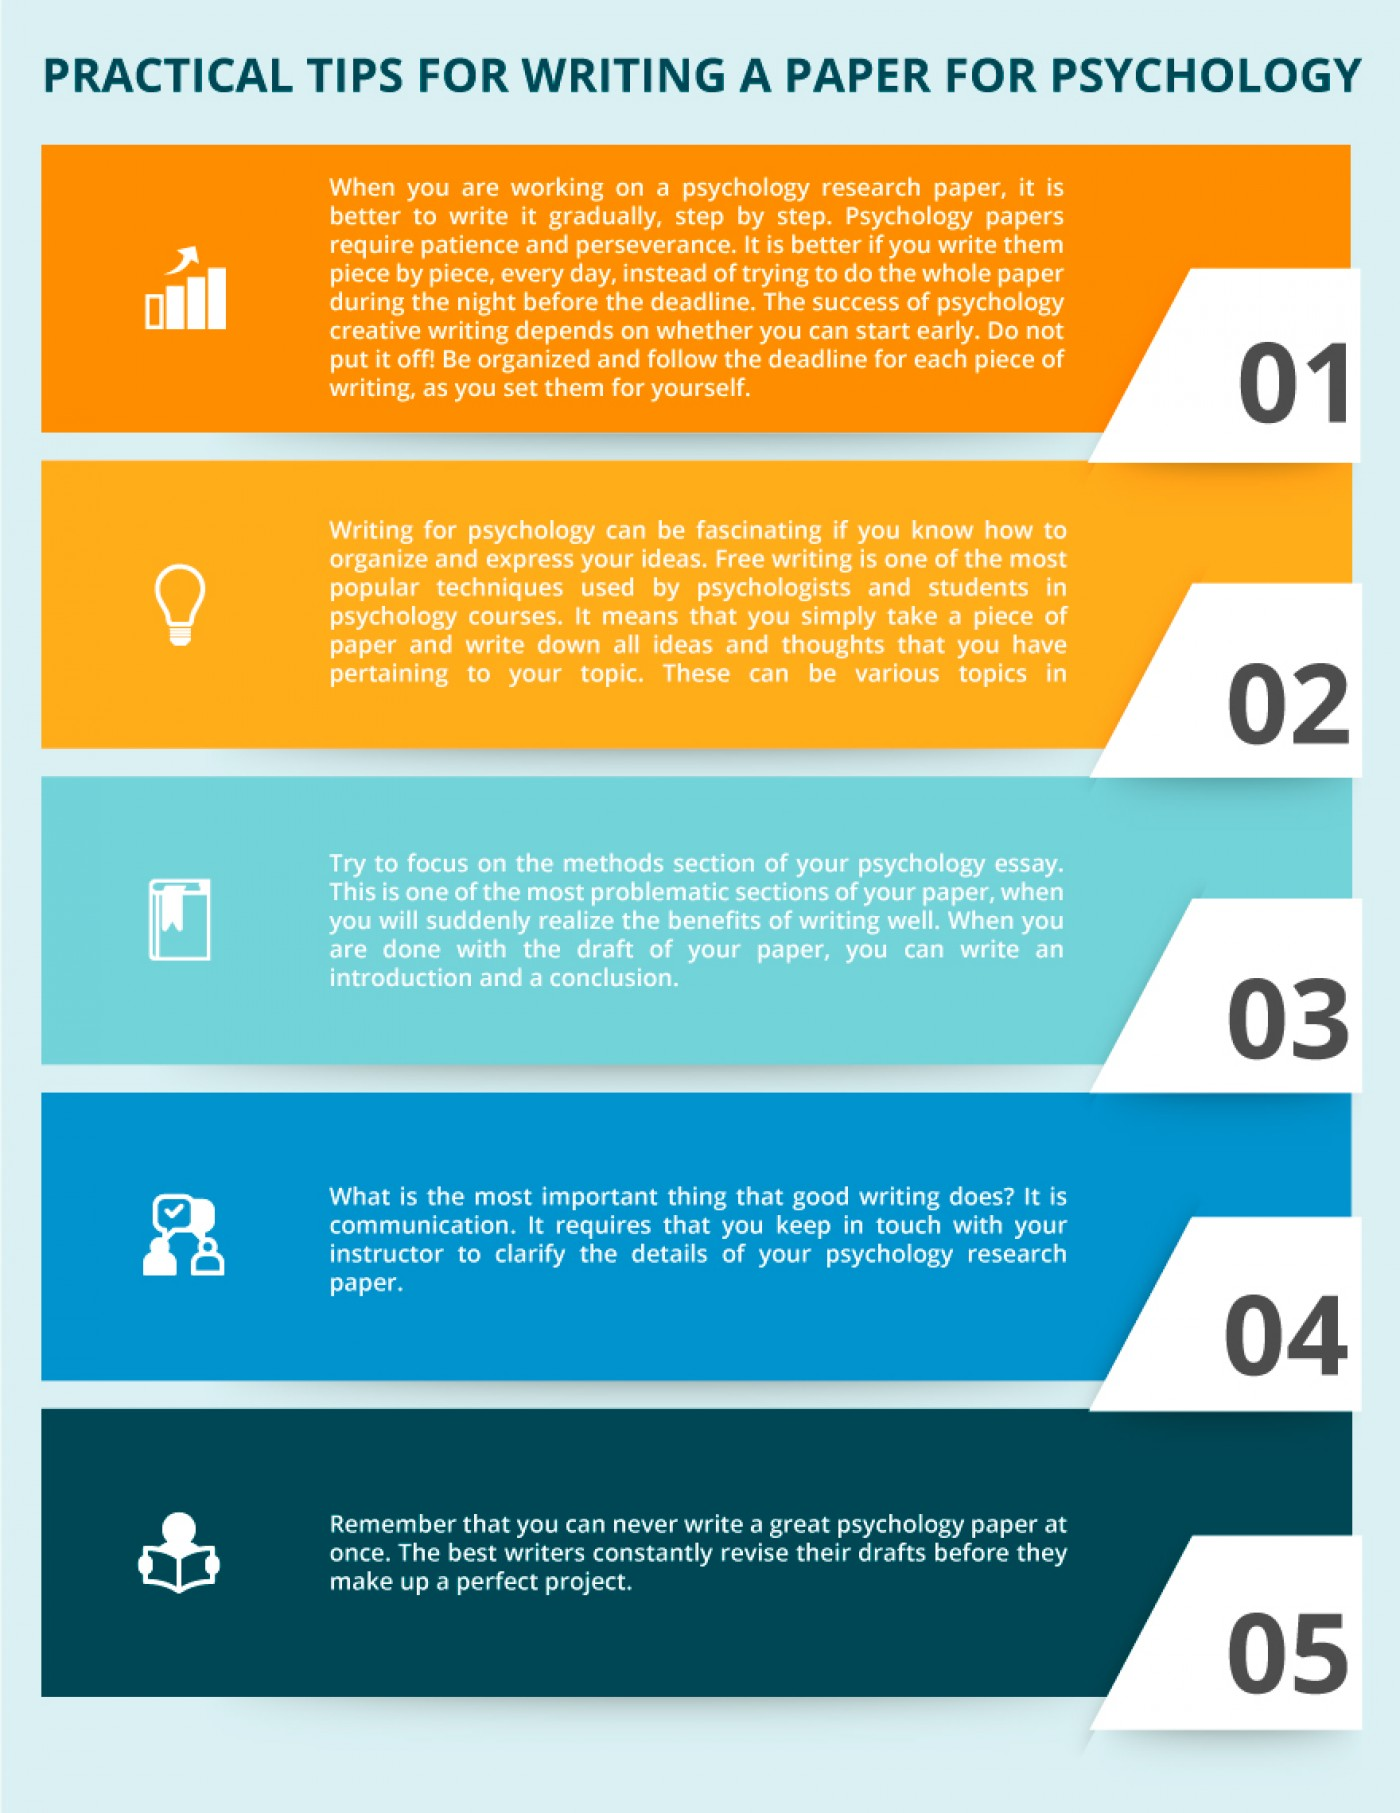 027 Good Topics For Research Papers In Psychology Infographic Practical Tips Writing Paper  Excellent List Of Interesting1400